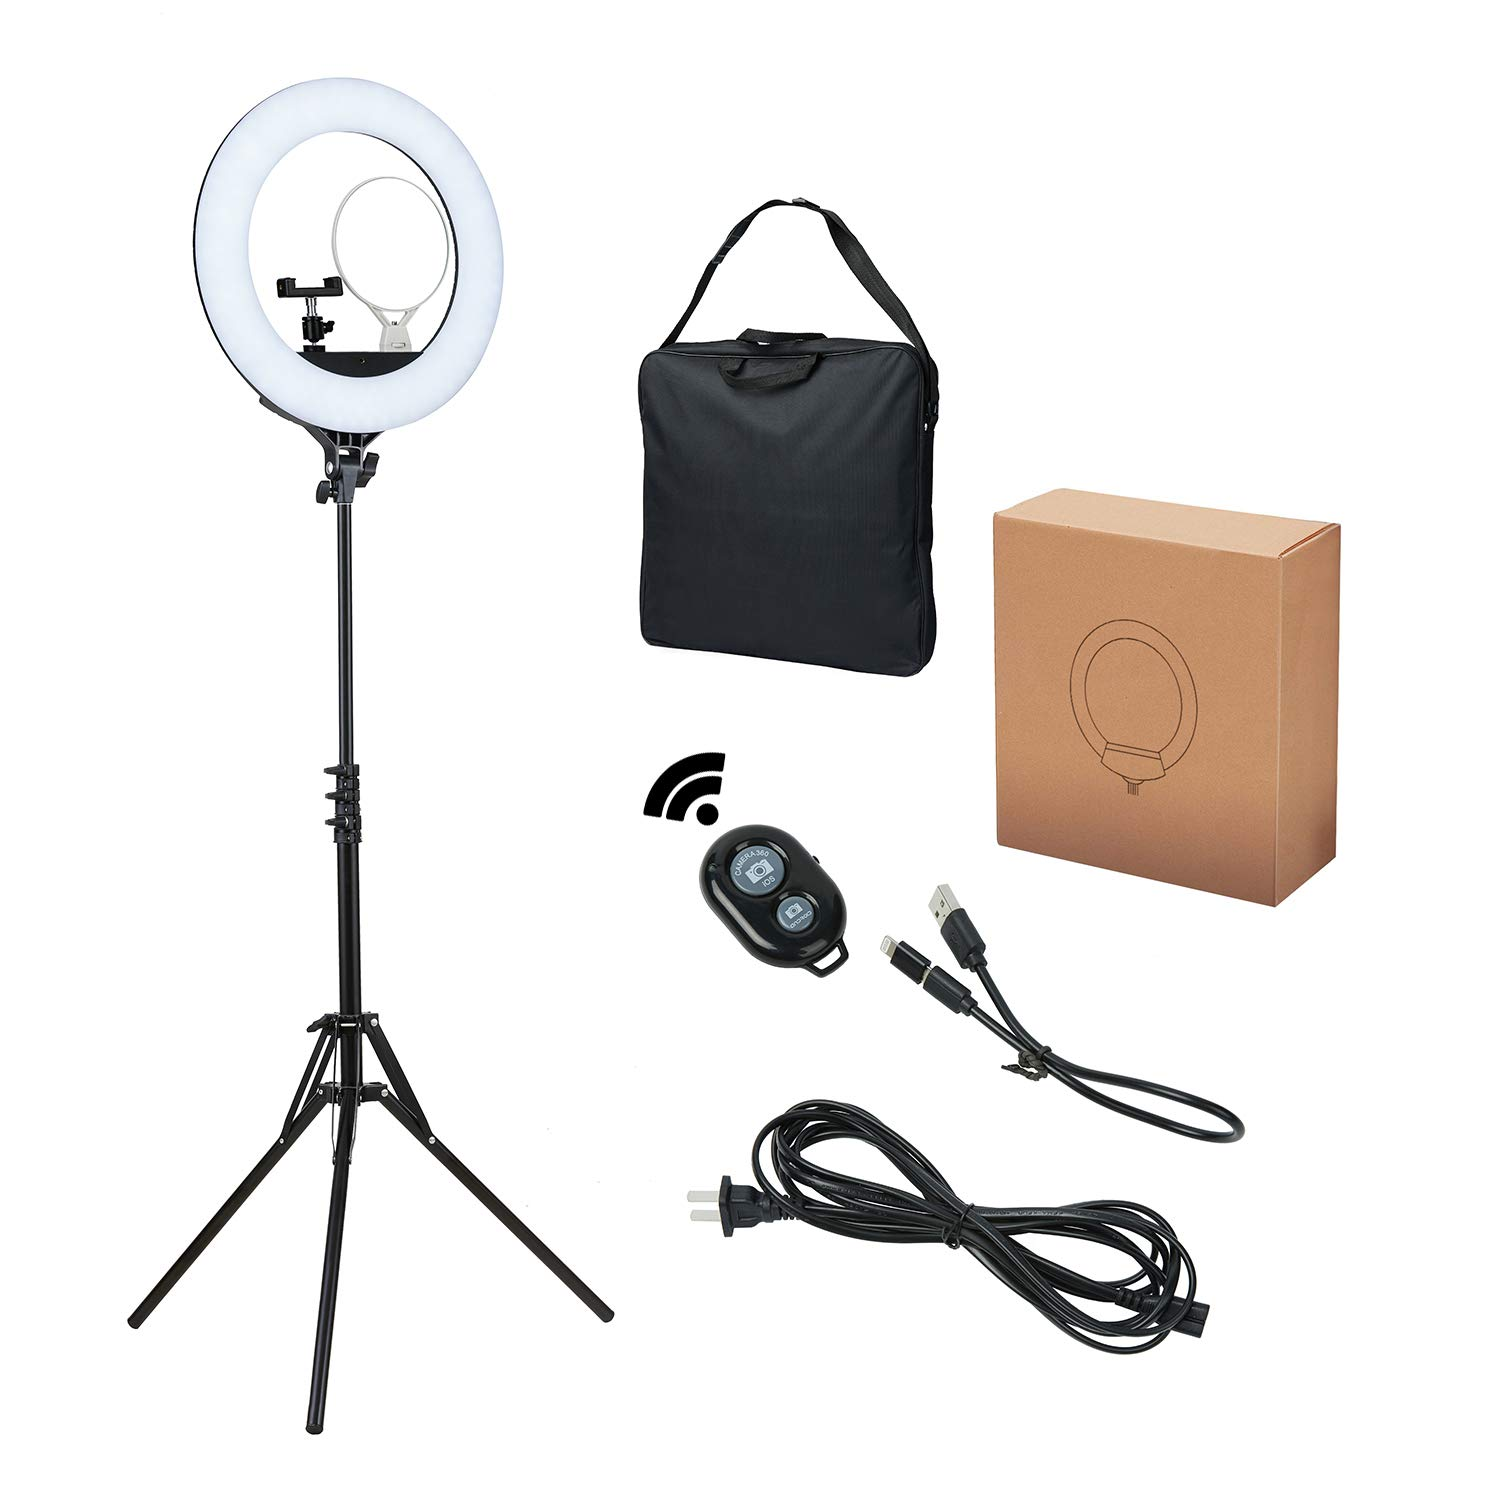 Ring Light, DEDAKJ 18 inch 480 pcs 80W Dimmable LED Ring Light with Cell Phone Holder/Tripod Stand/Remote Control/Carrying Bag and Dual Mirror for YouTube Videos/Take Pictures/Makeup O Ring Light